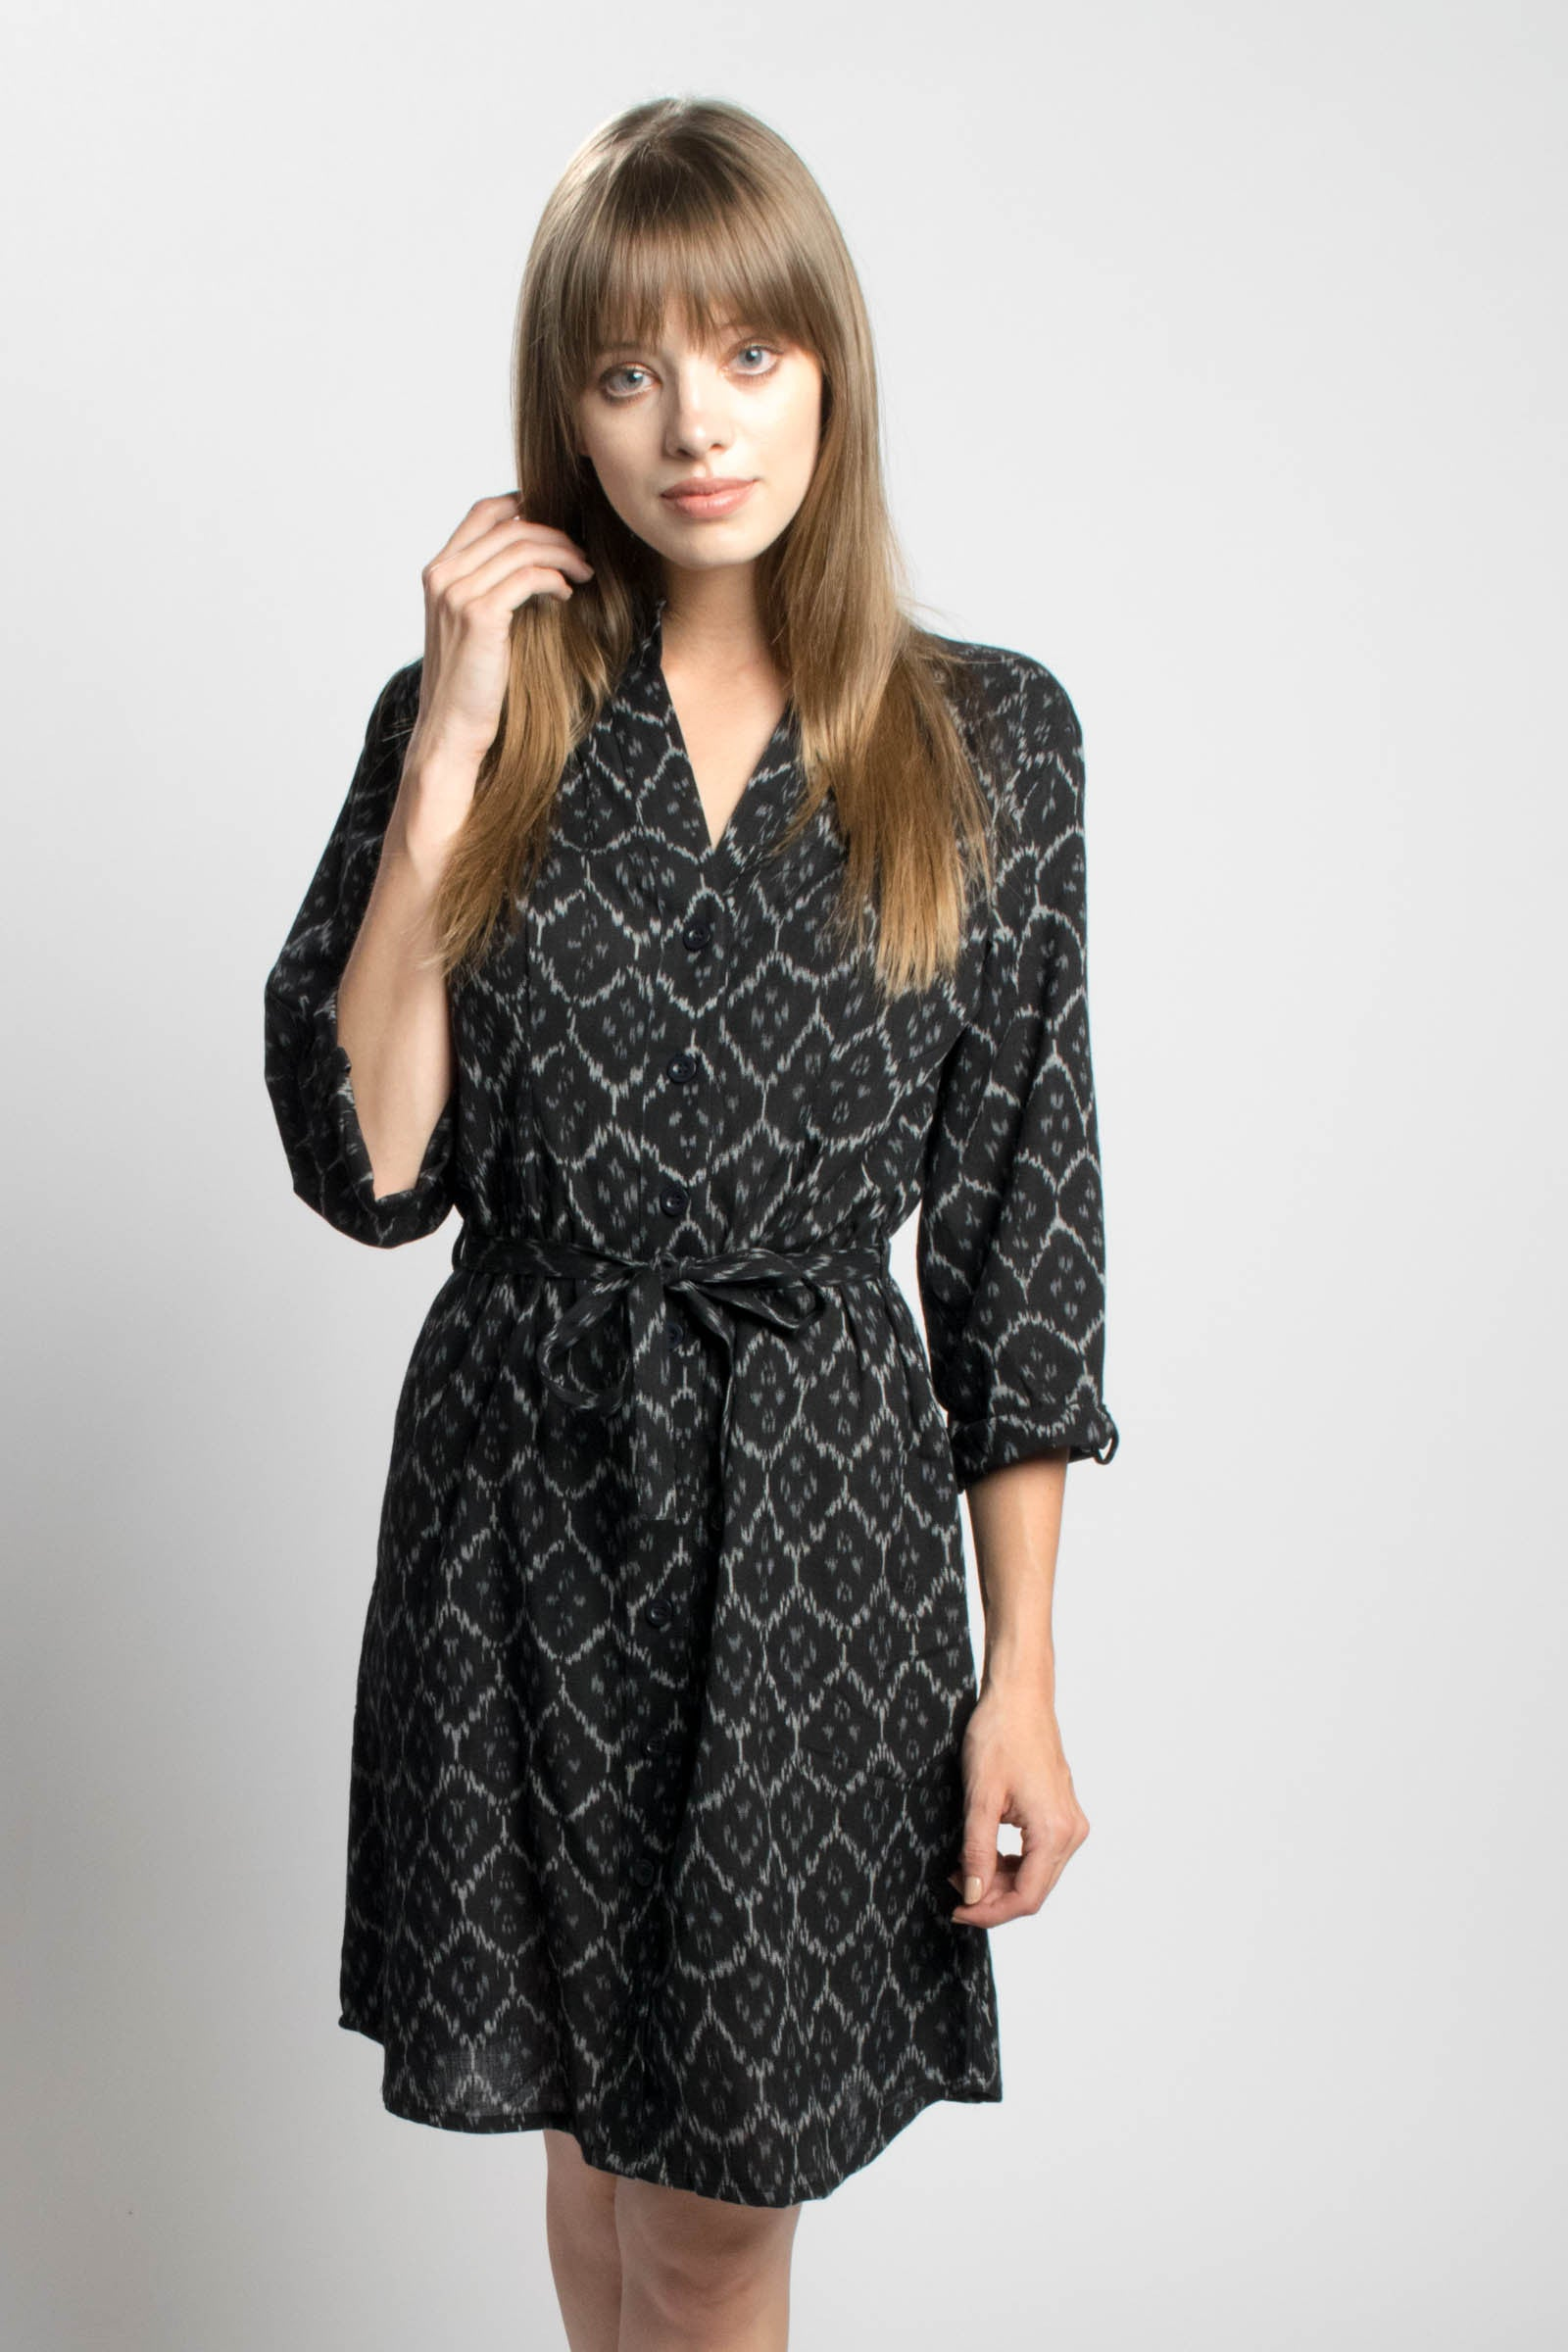 Charcoal Winter Dress